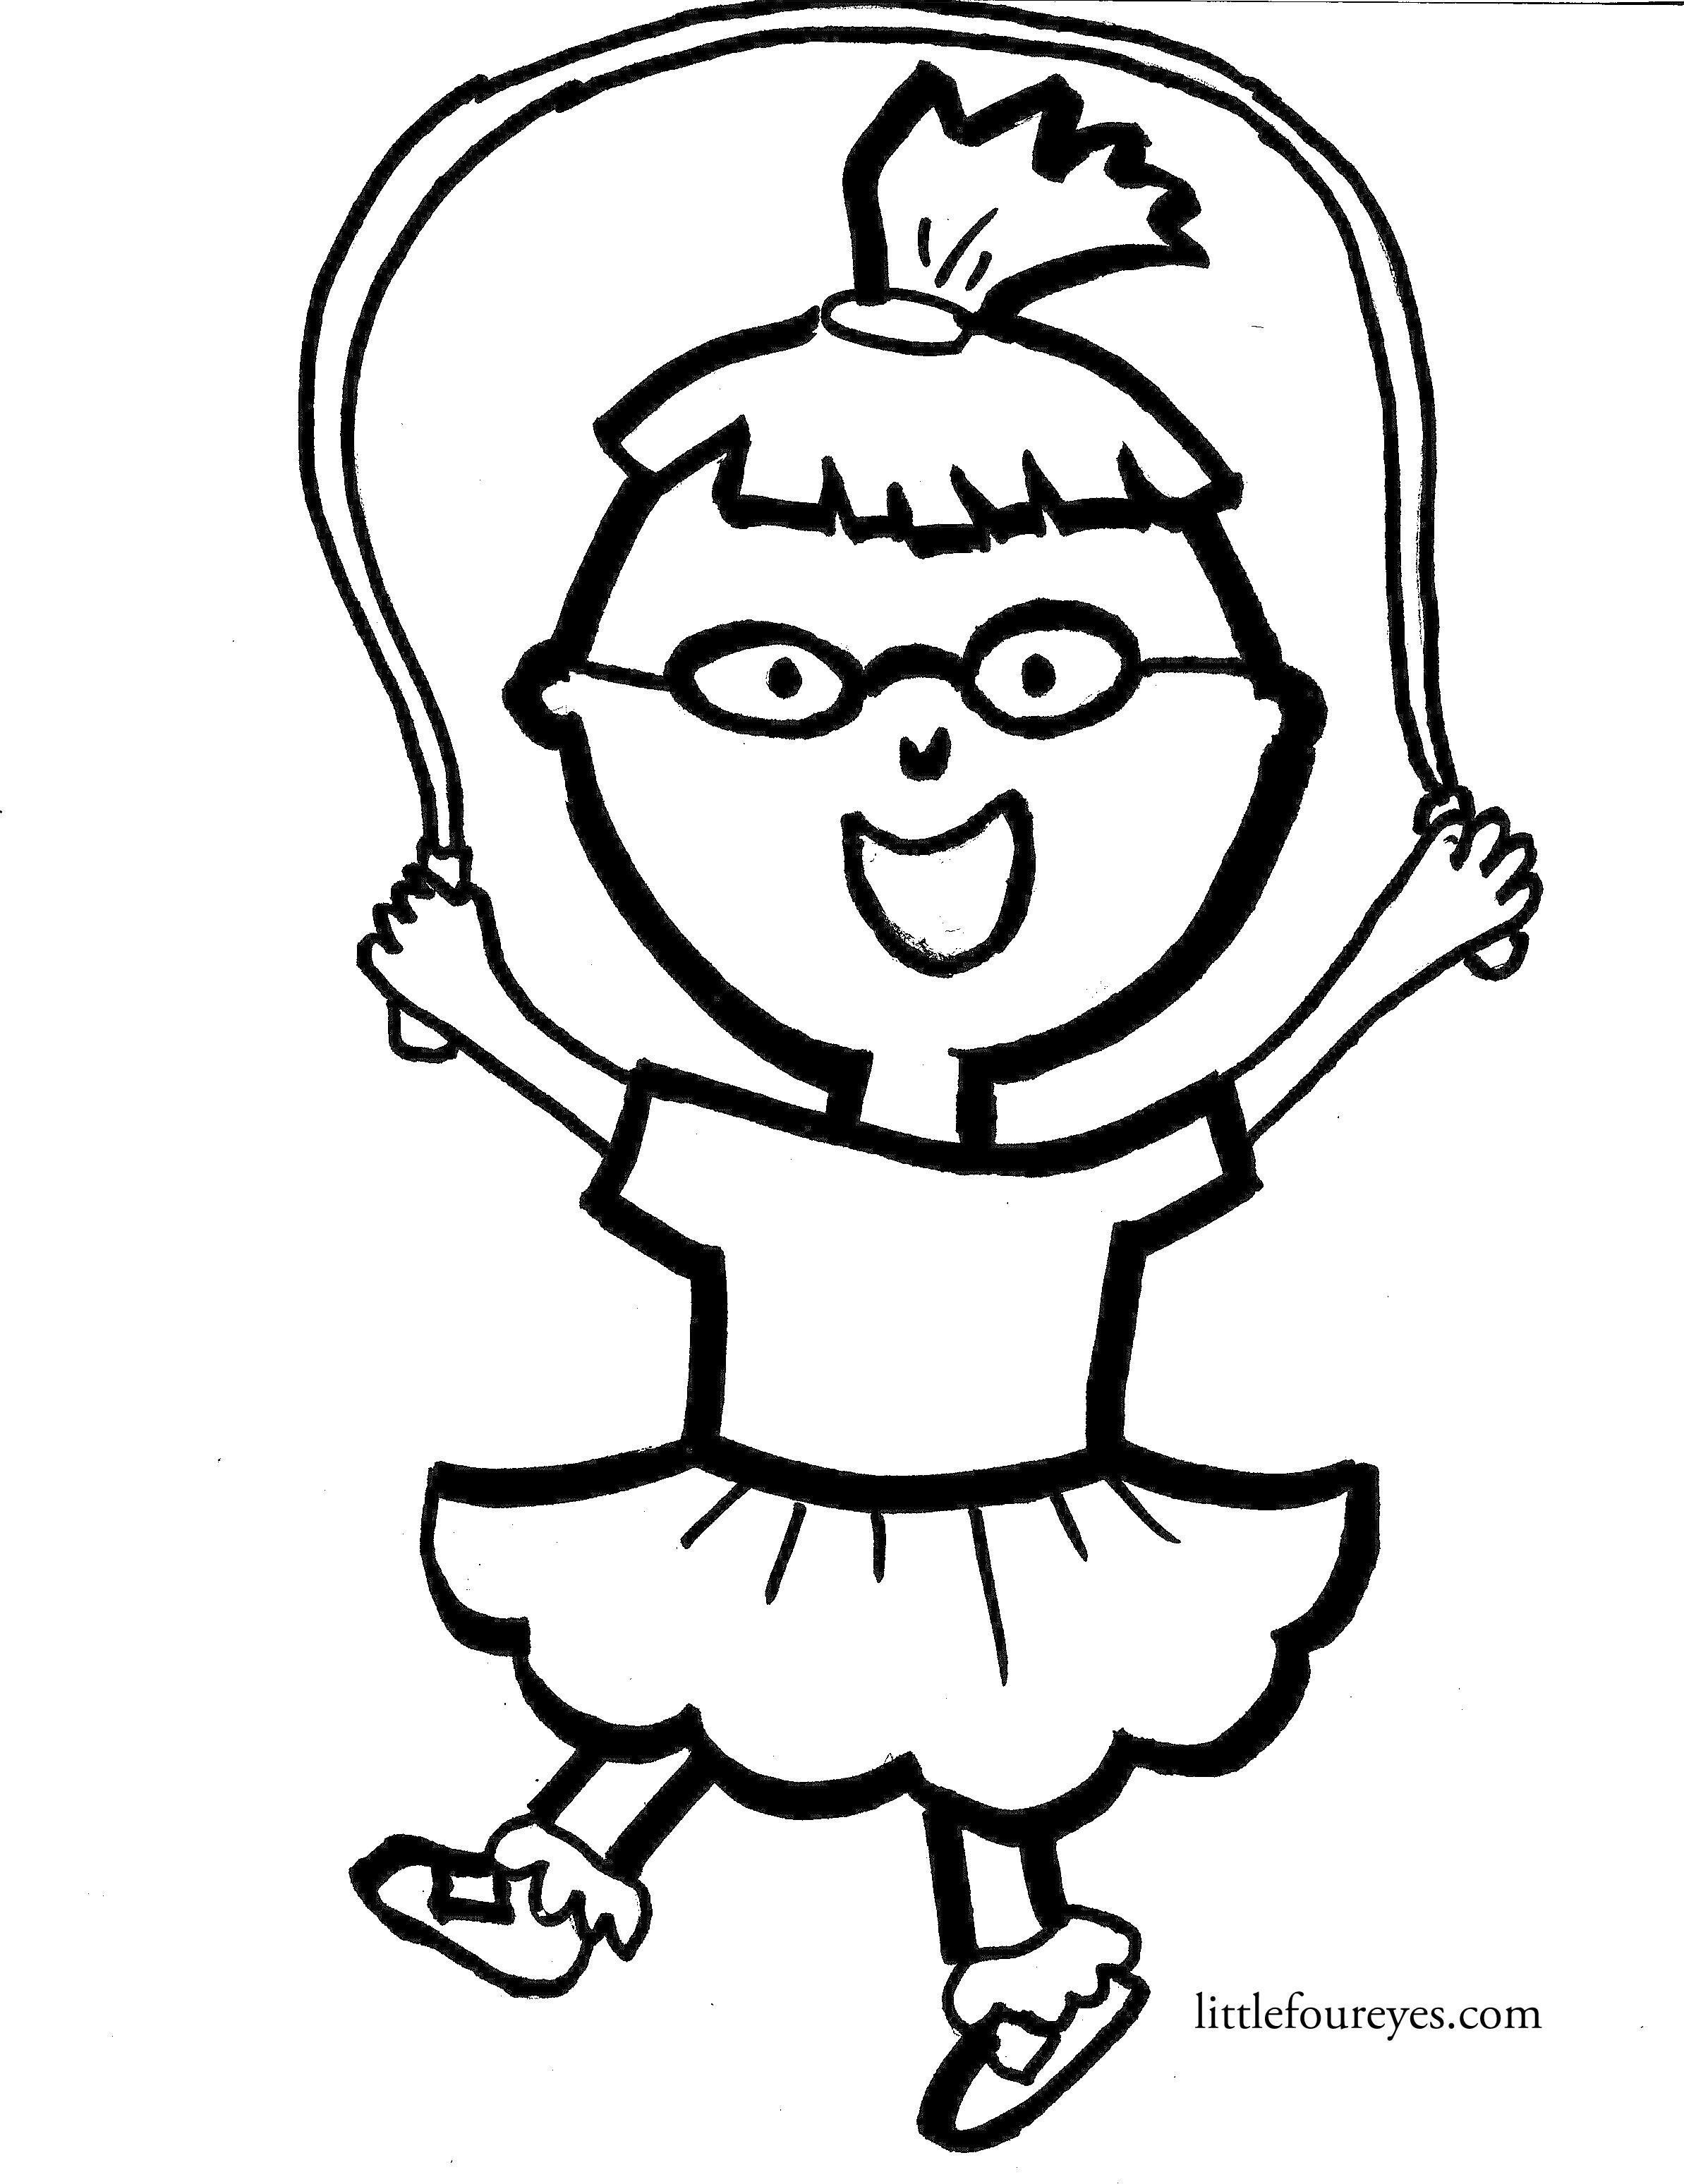 jump rope coloring pages | Heart coloring pages, Coloring pages ... | 3096x2387